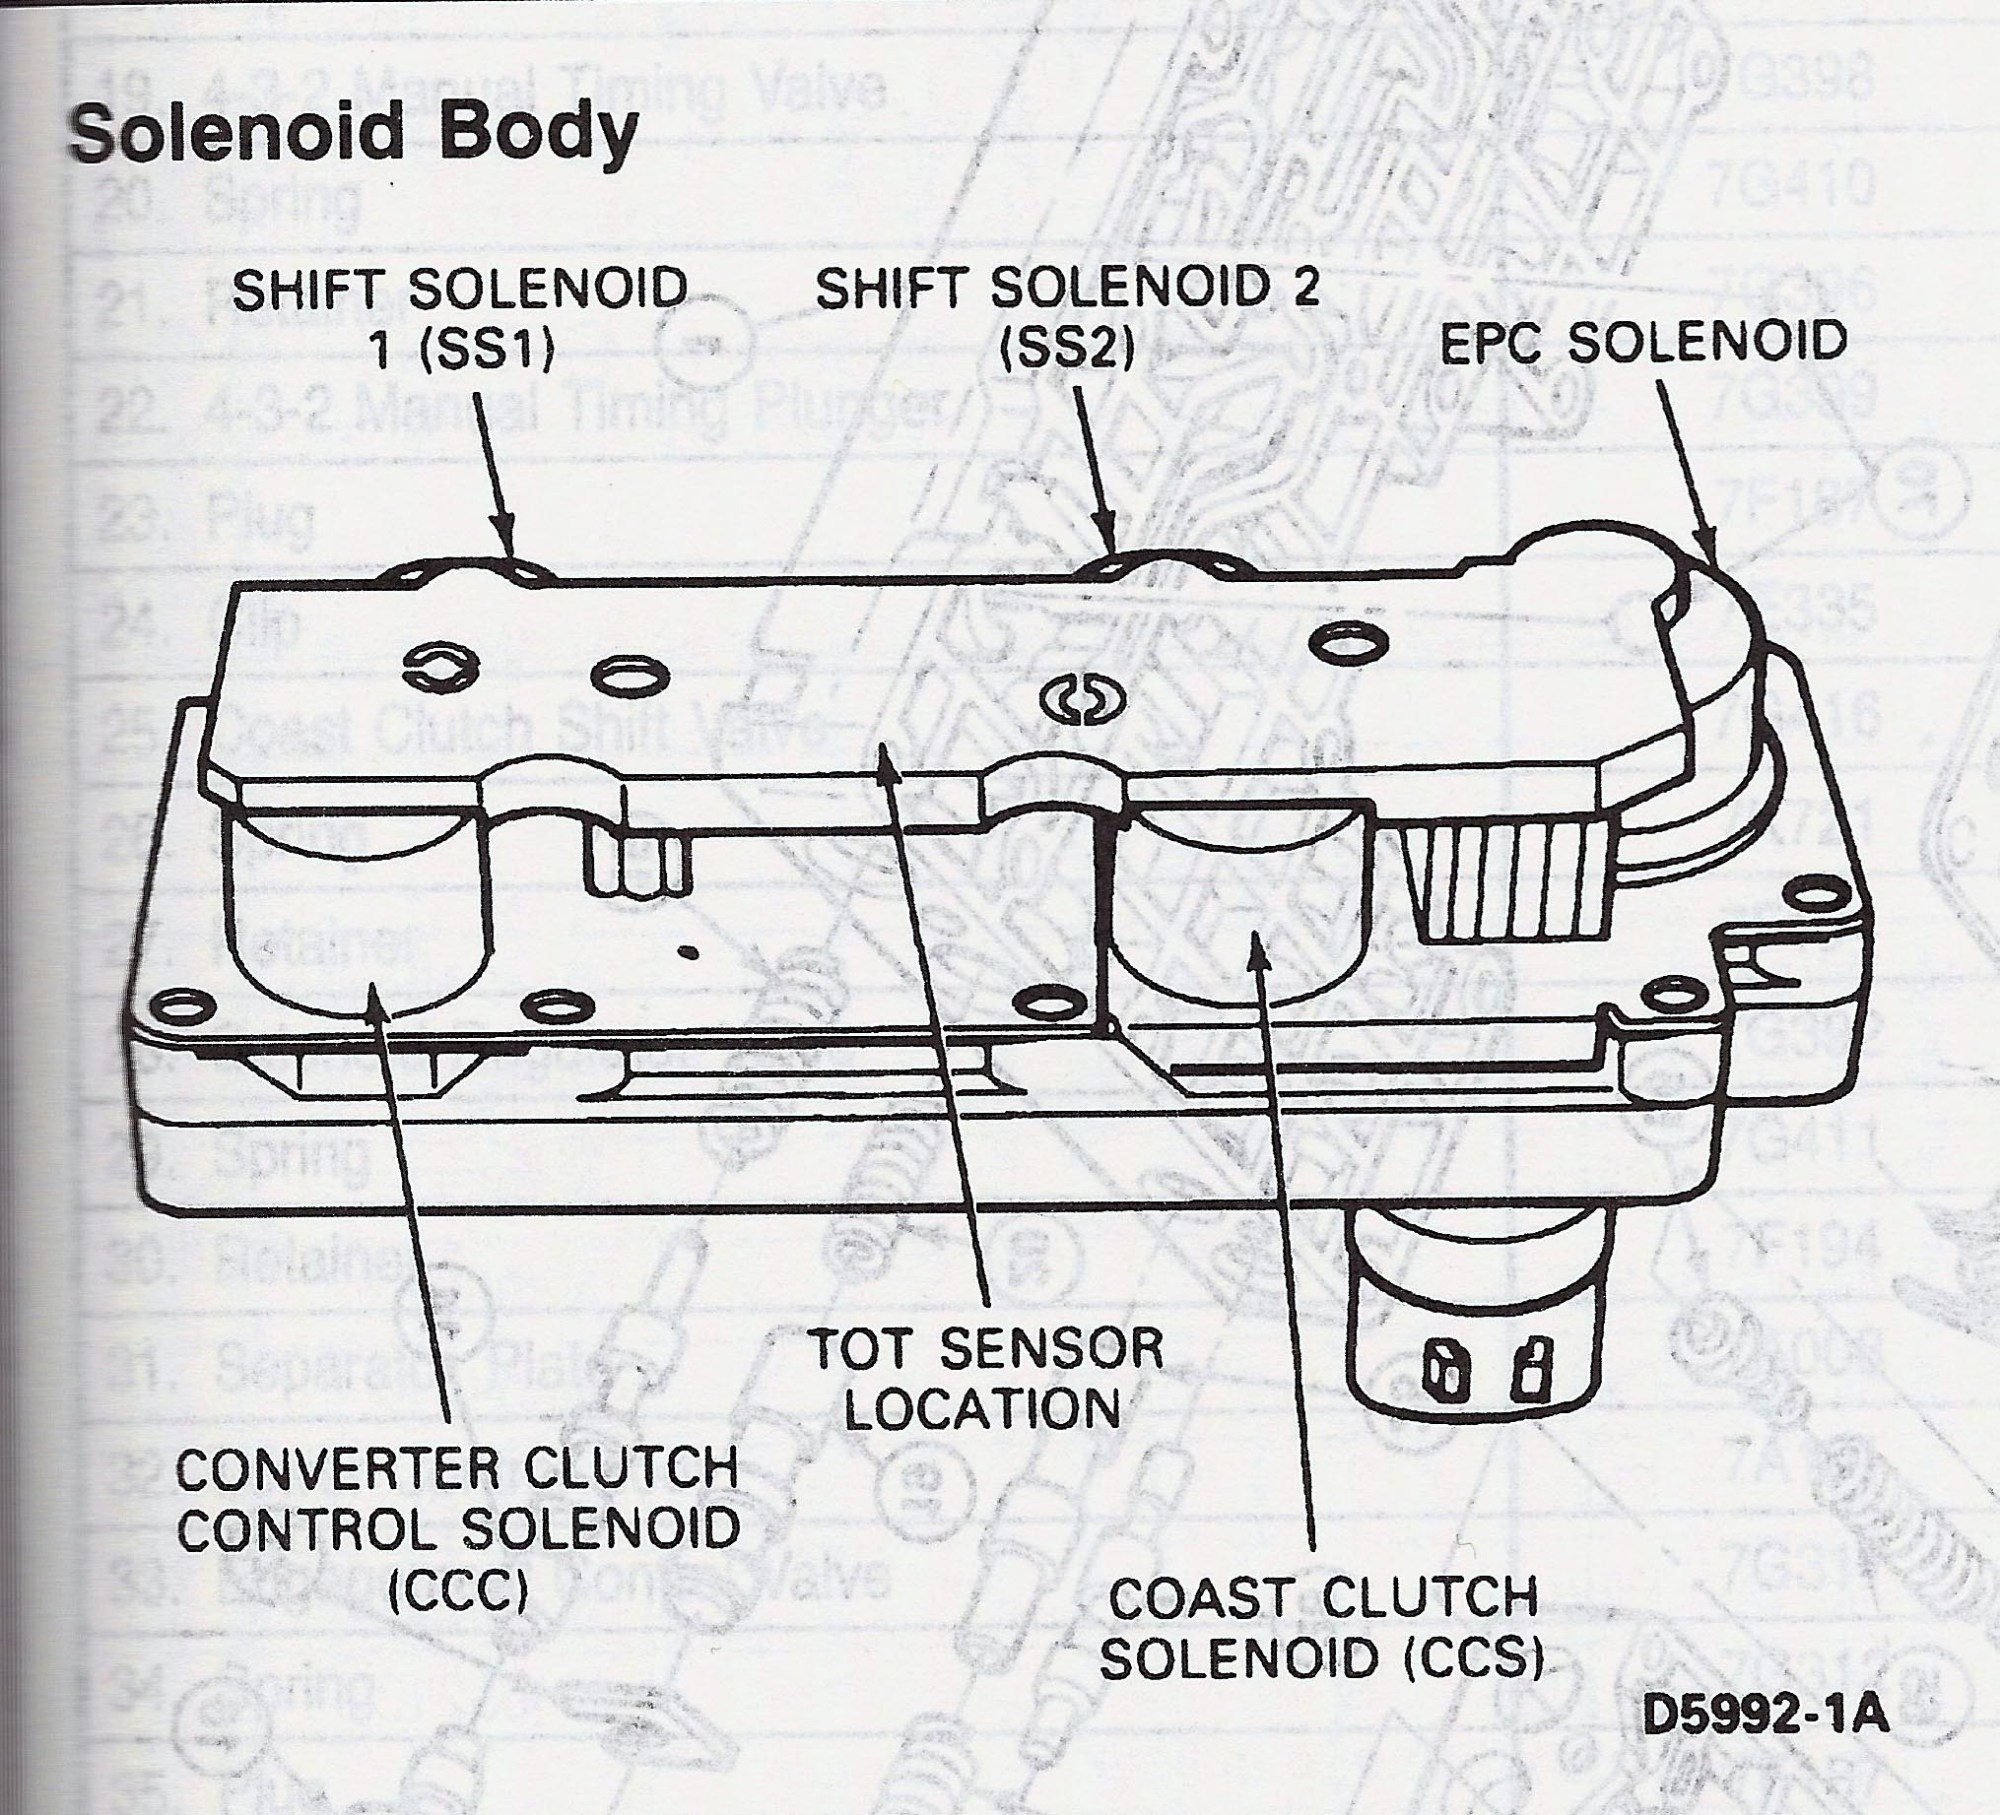 hight resolution of powertrain transmission e40d wiring diagram trusted wiring diagrams e40d transmission wiring diagram e4od diagram main control